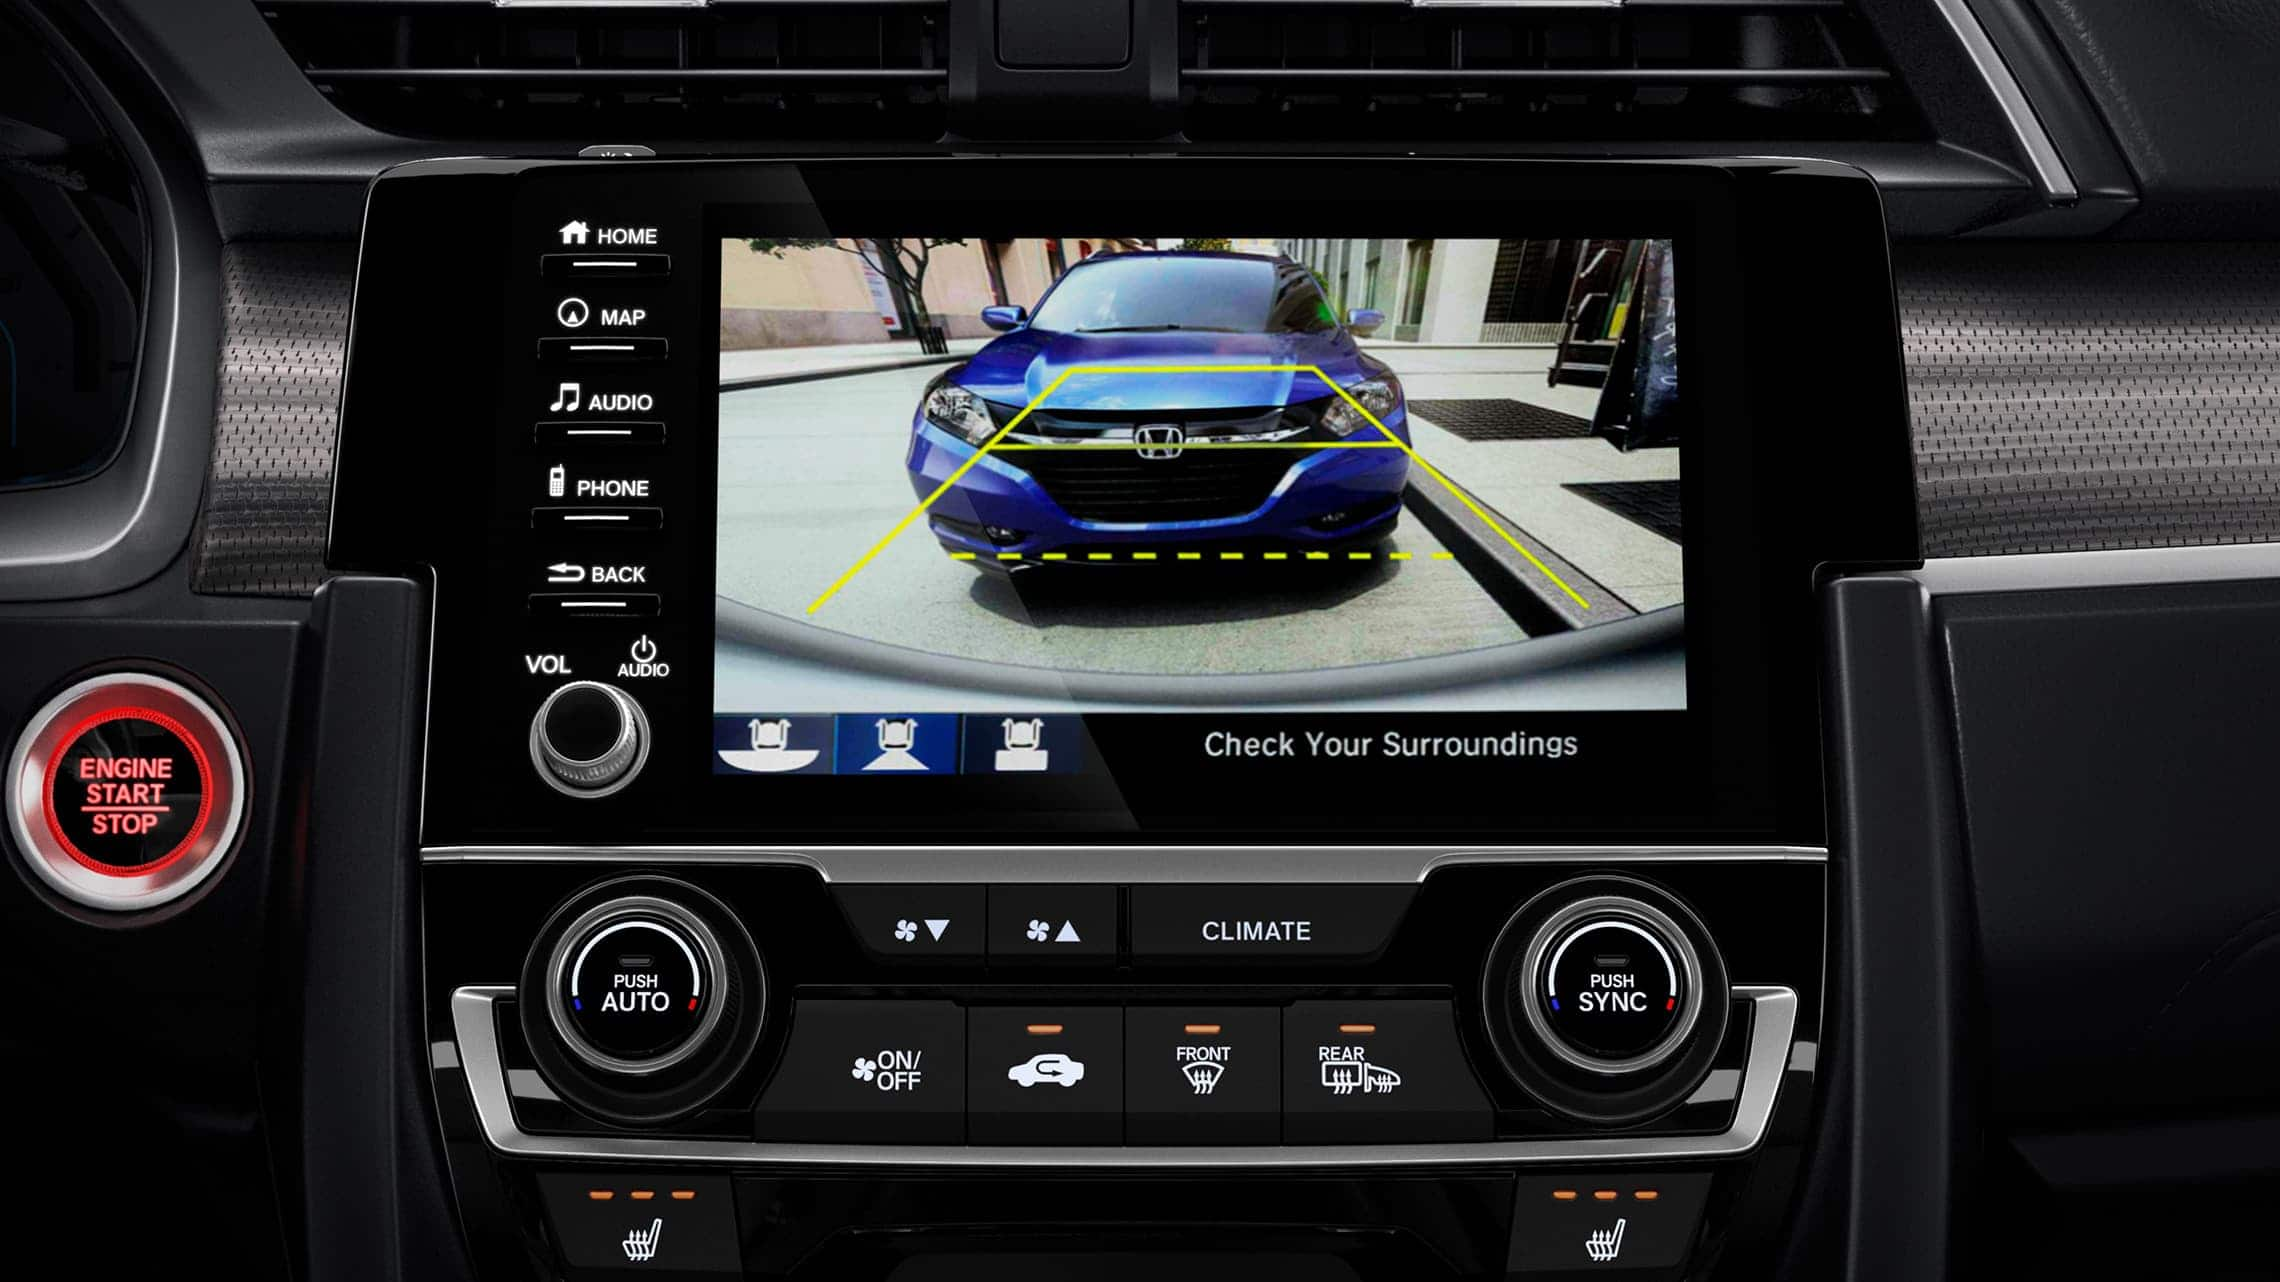 Multi-angle rearview camera detail on Display Audio touch-screen in the 2020 Honda Civic Touring Sedan.